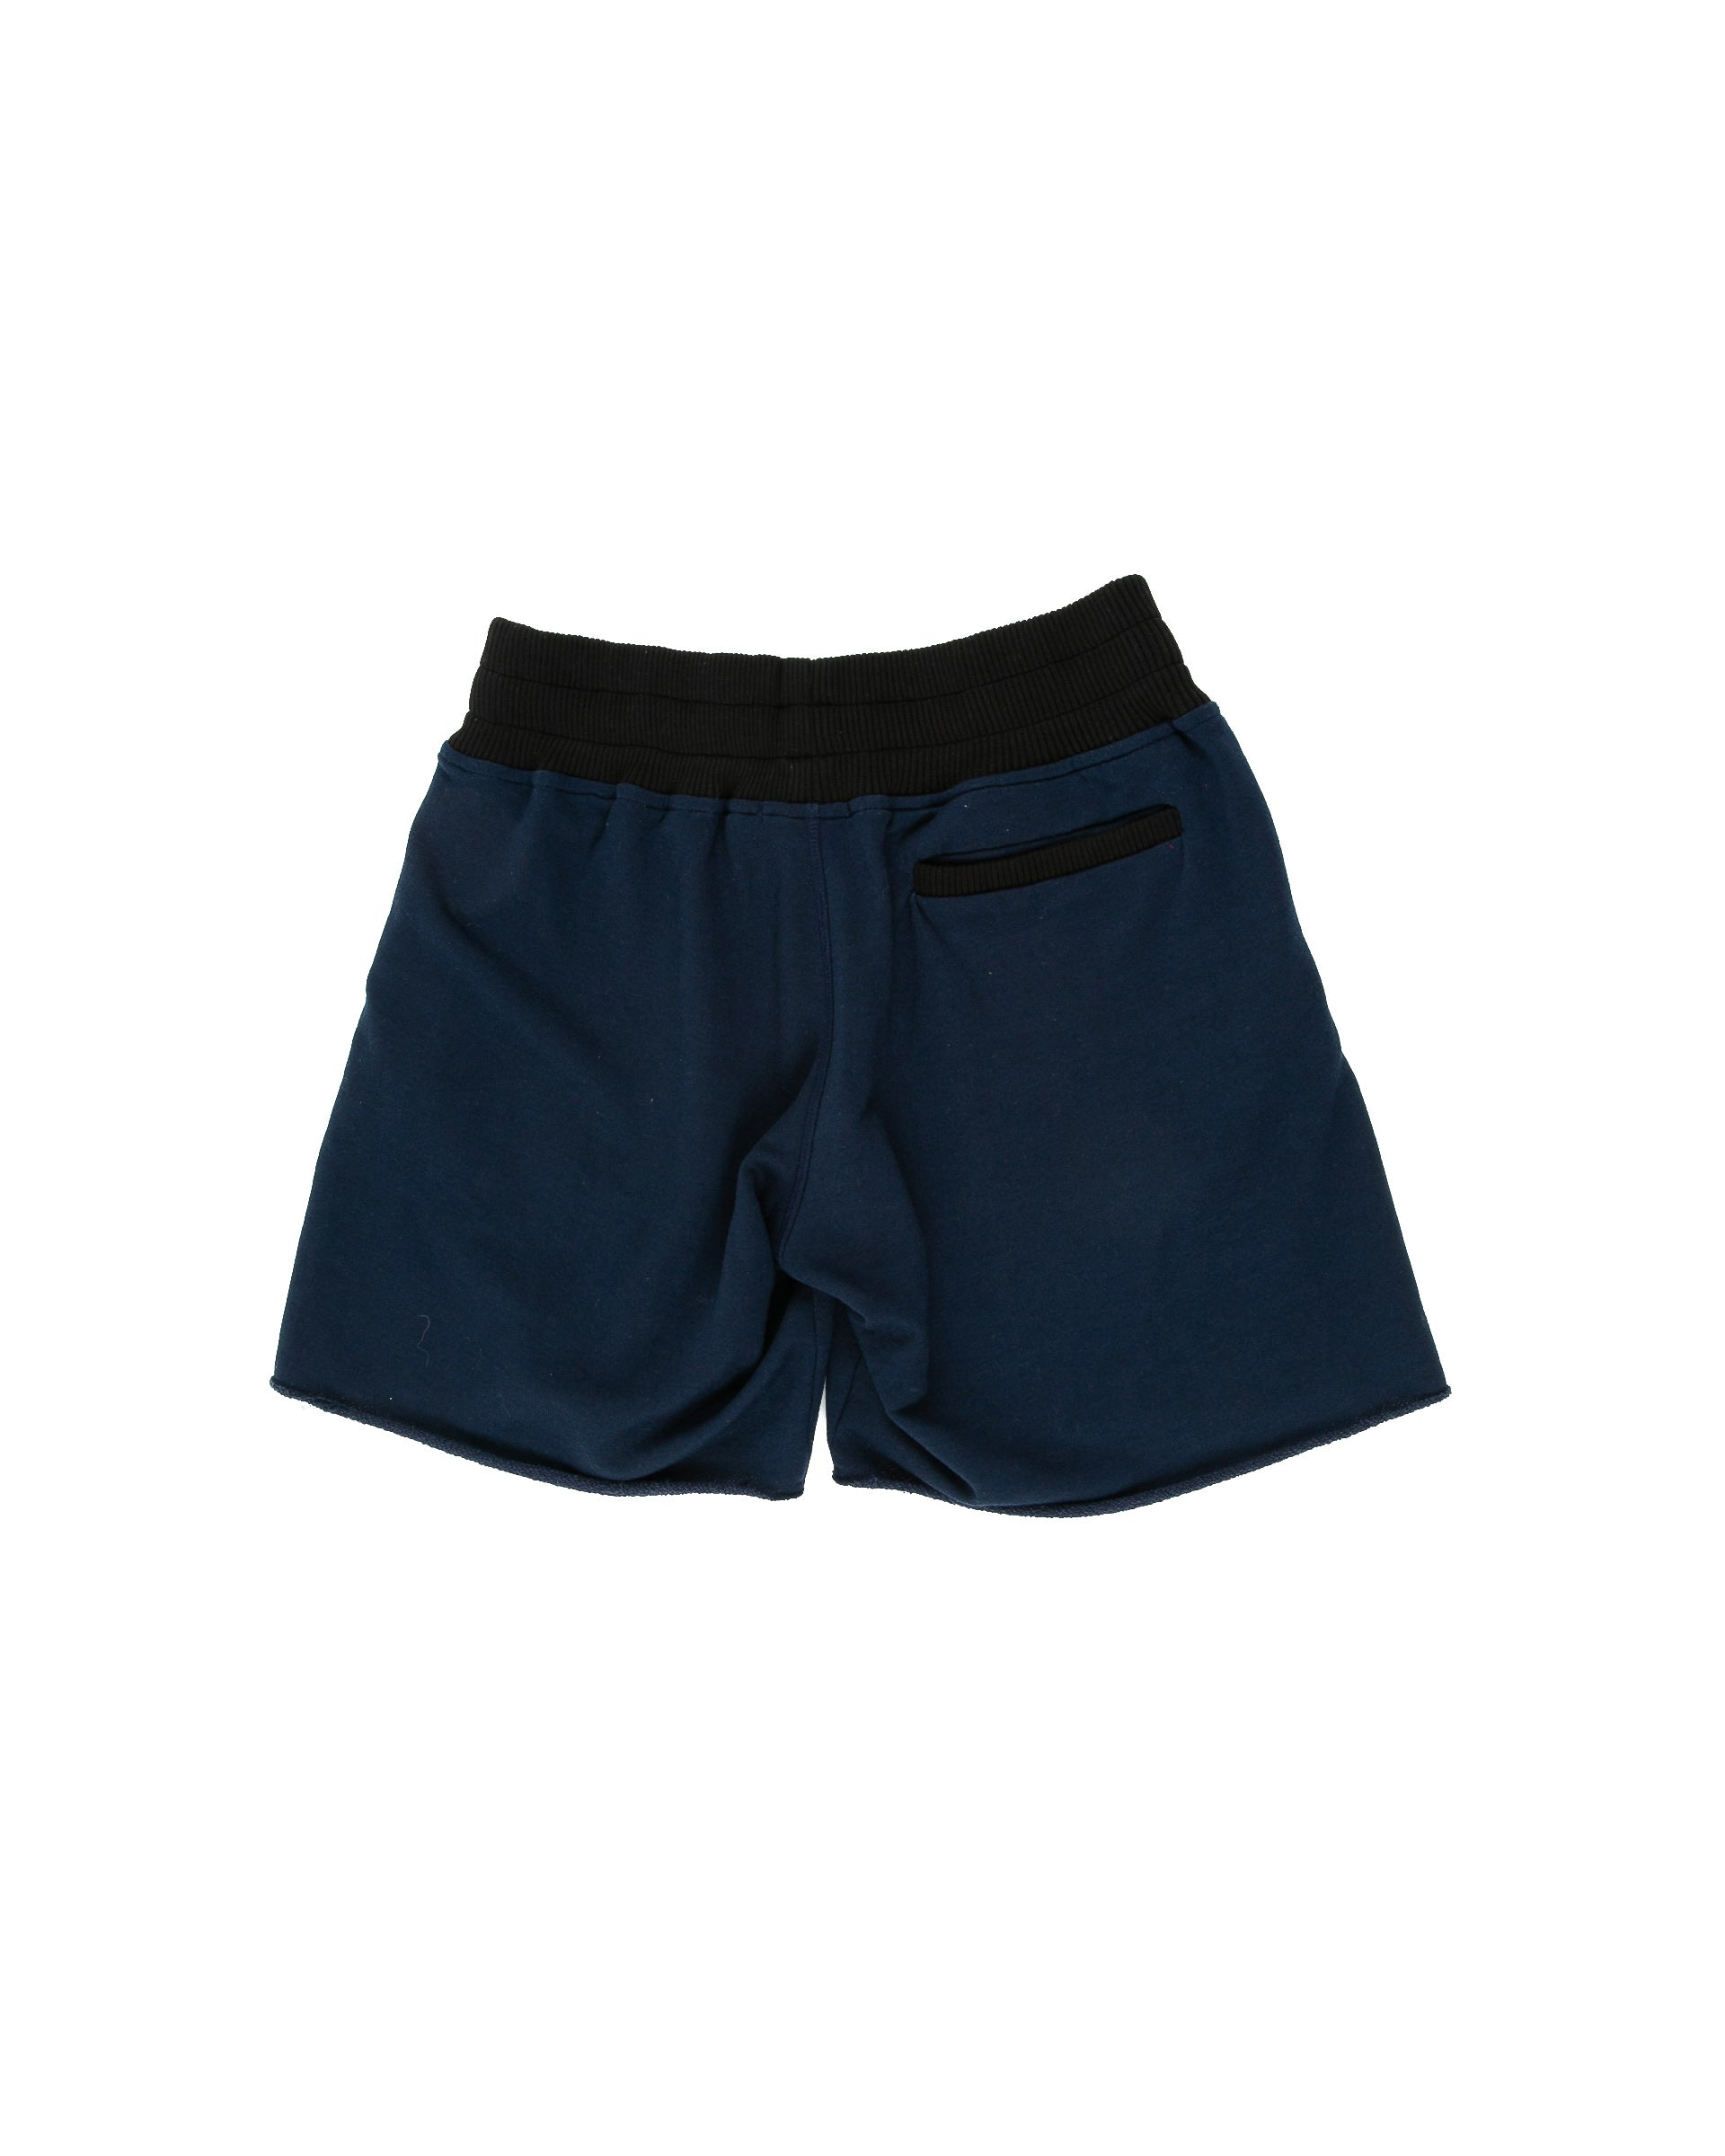 Terry Short in Navy